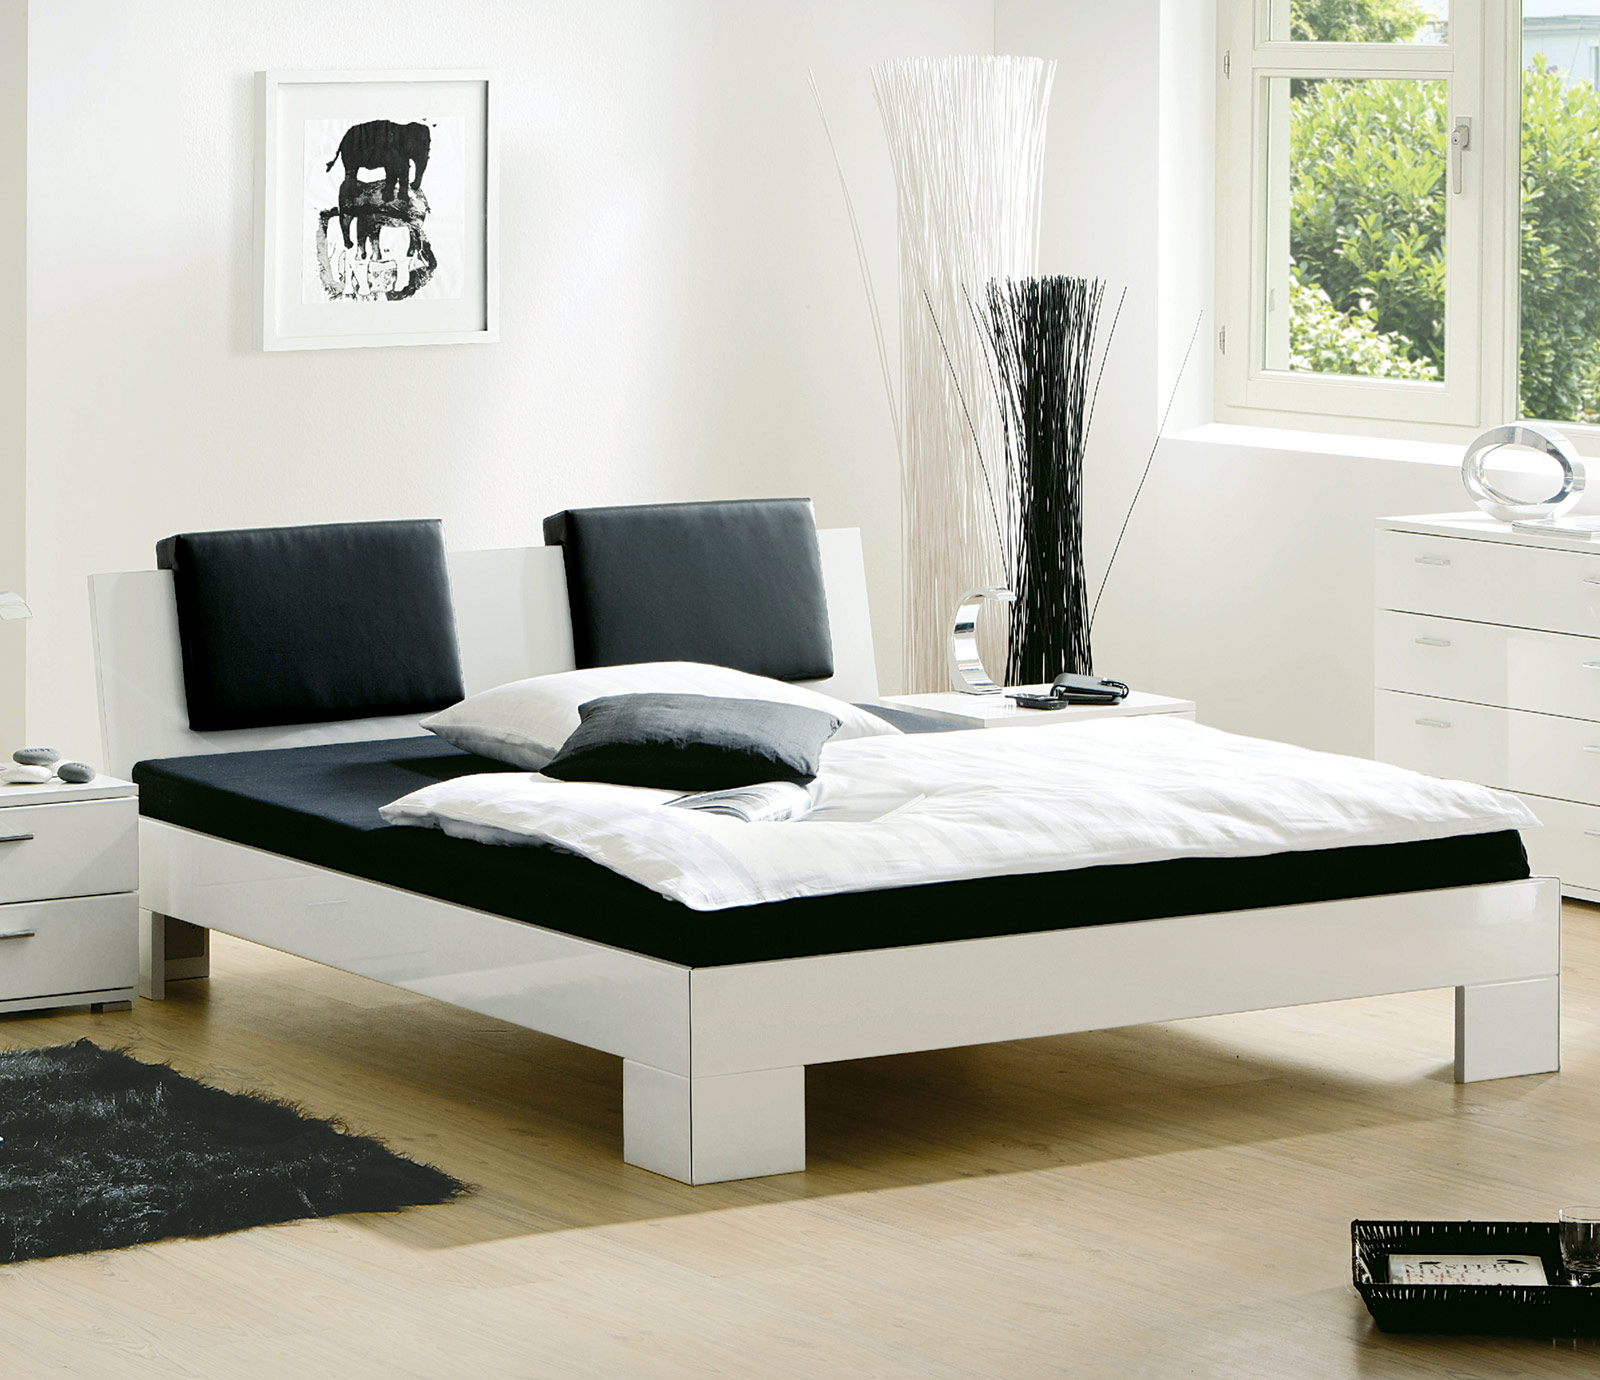 ikea ankleidezimmer regal. Black Bedroom Furniture Sets. Home Design Ideas